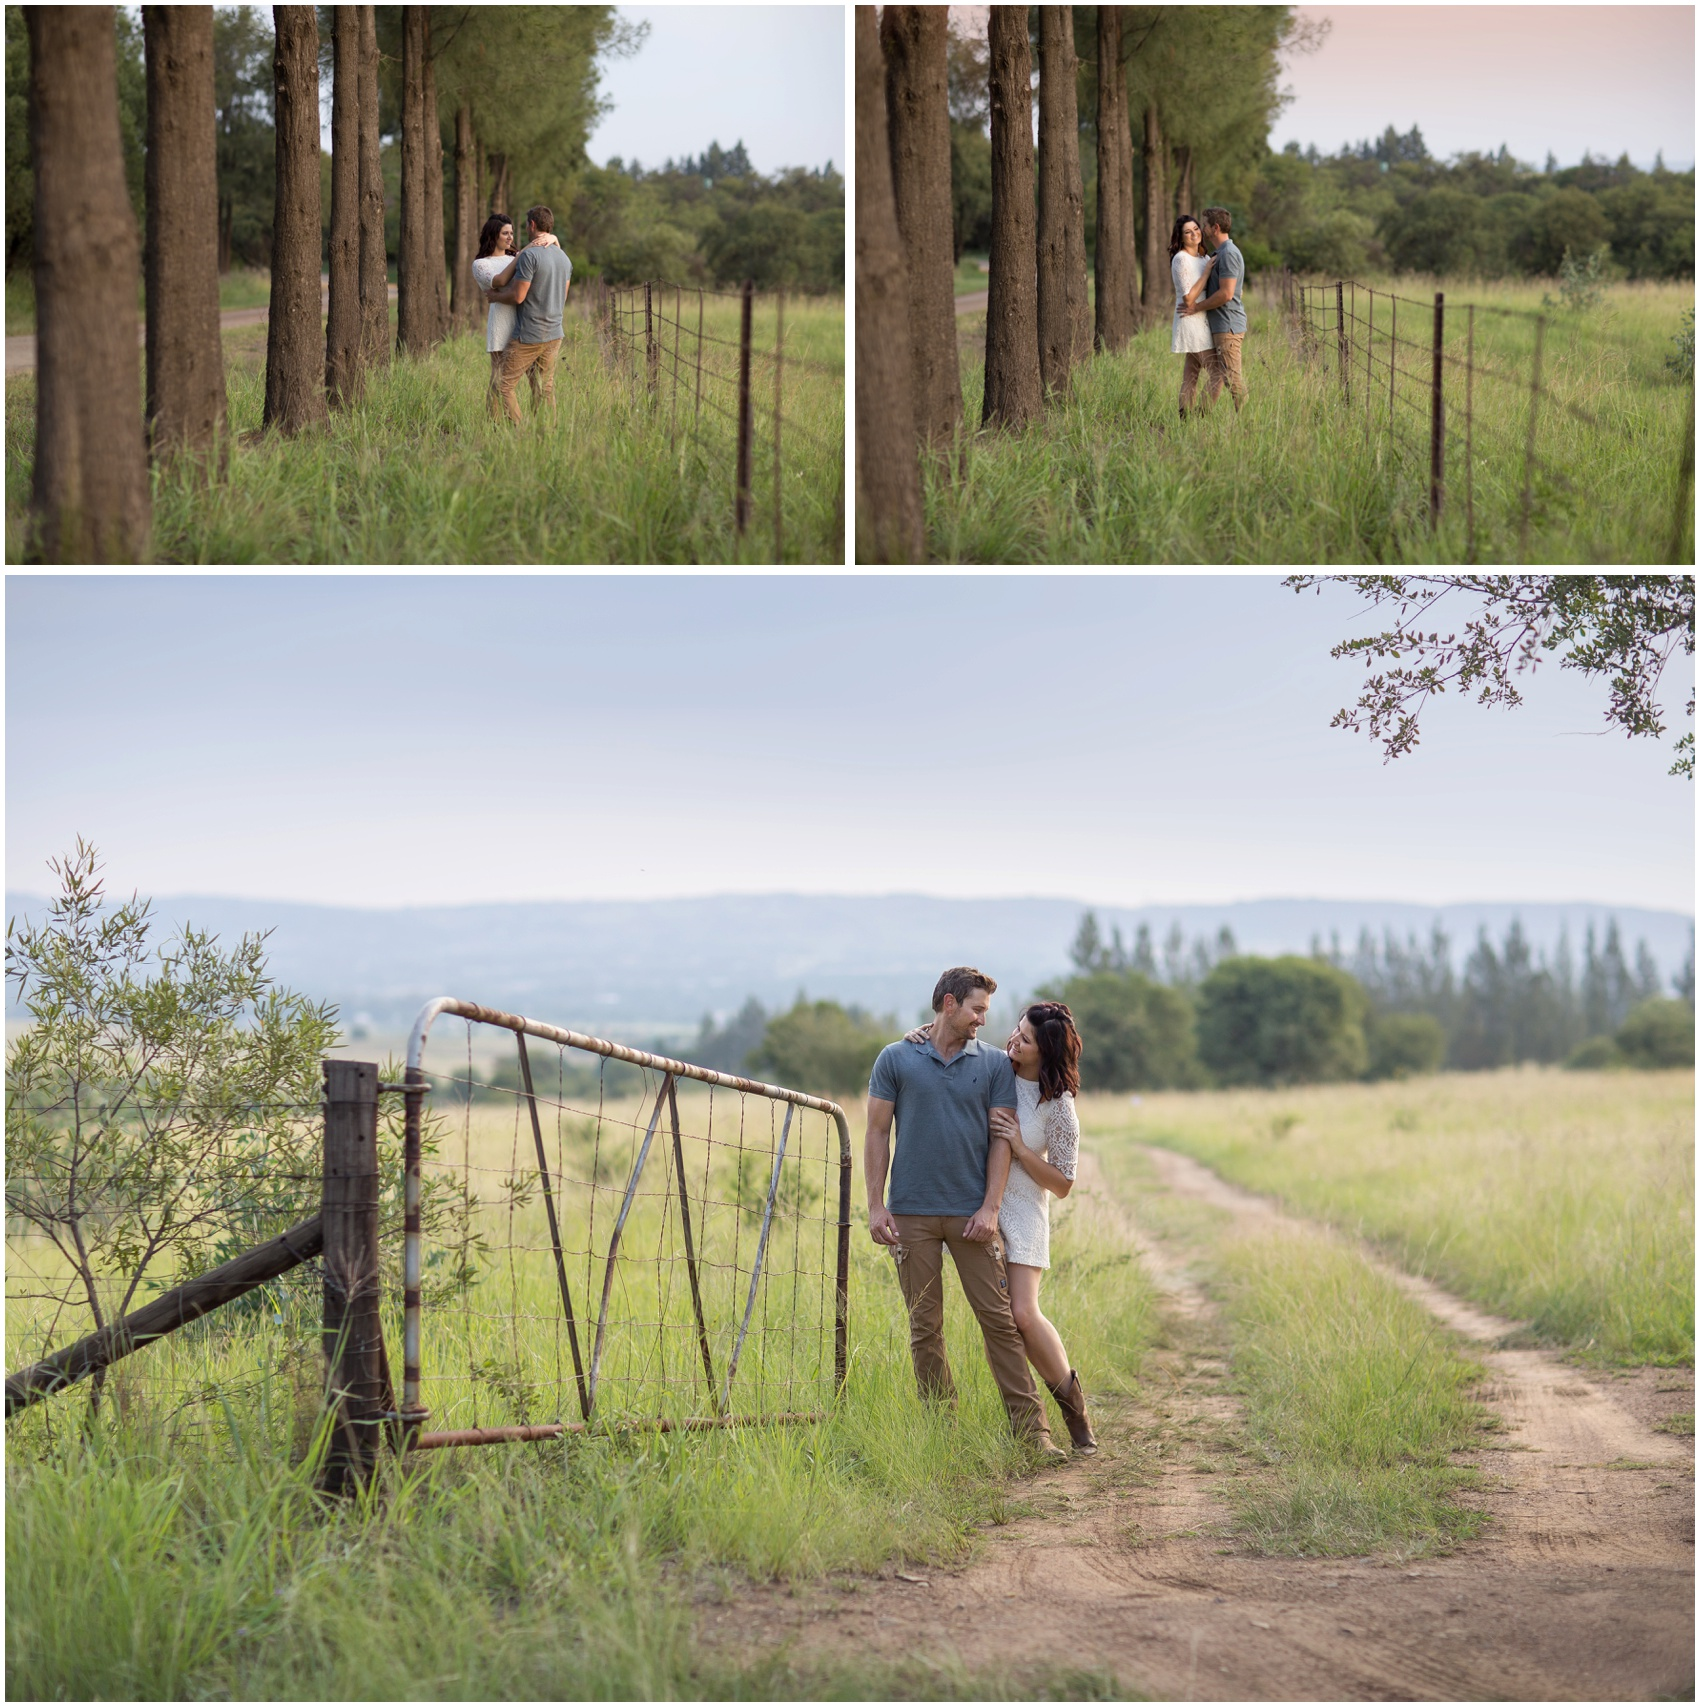 rosemary_hill_engagement_shoot_stephanie_and_jannie_13